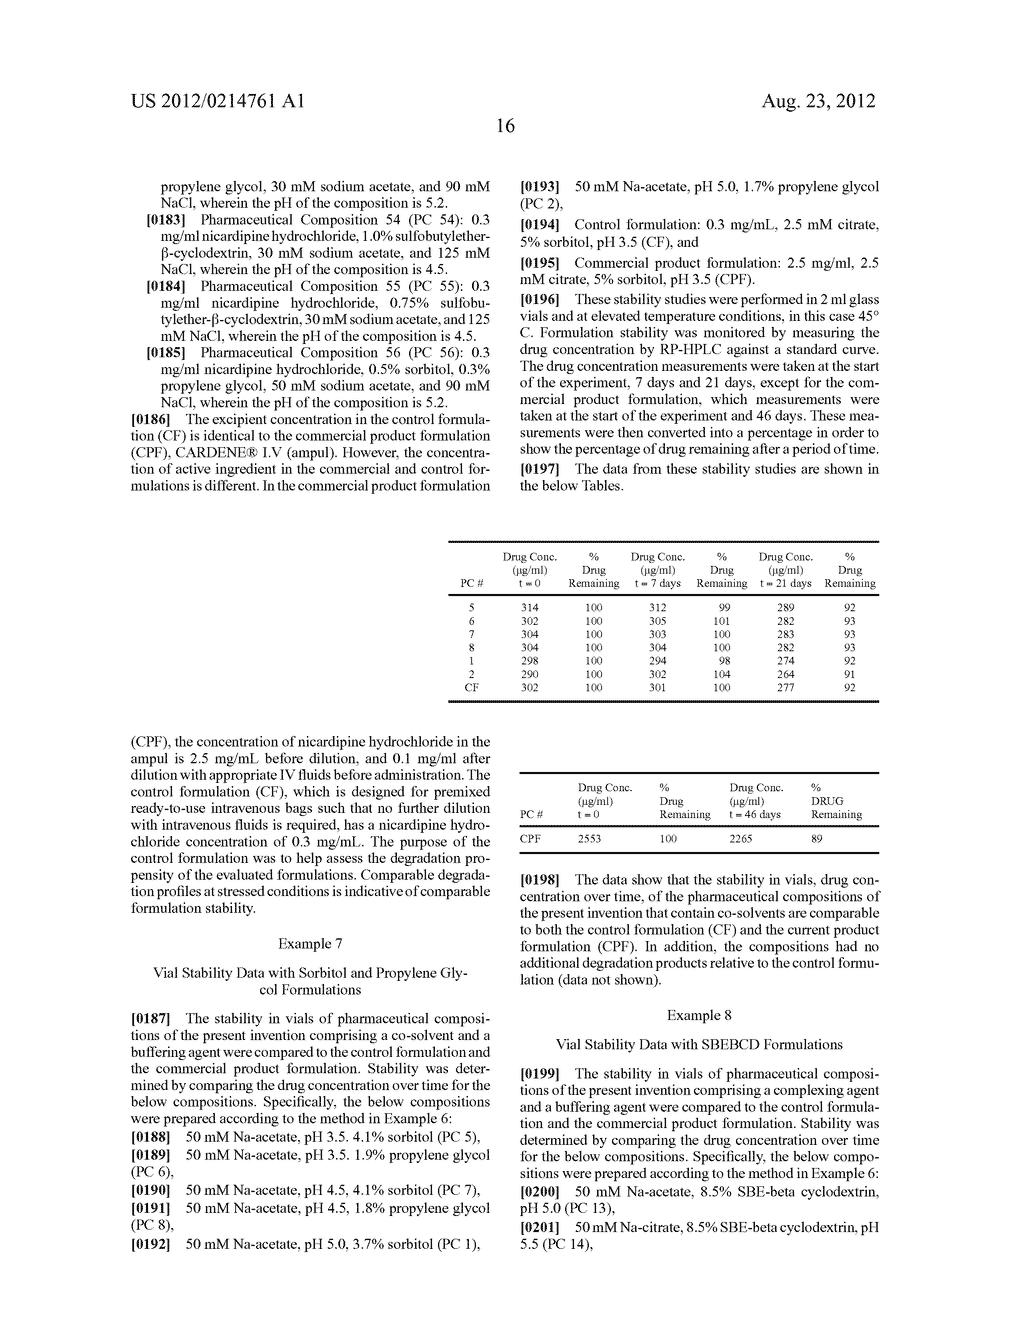 PRE-MIXED, READY-TO-USE IV BOLUS NICARDIPINE COMPOSITIONS AND METHODS OF     USE - diagram, schematic, and image 23